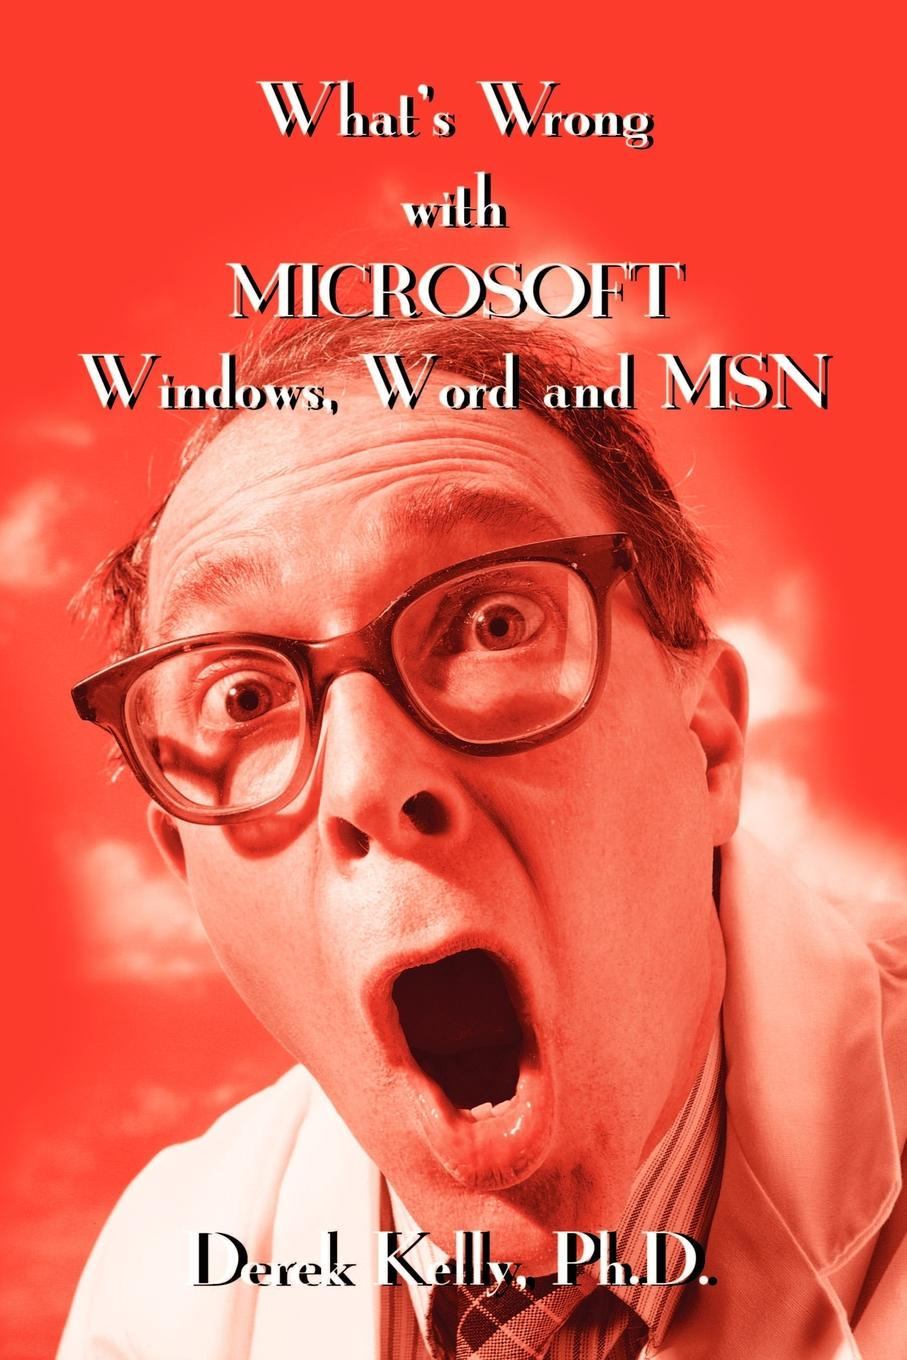 Derek Kelly What's Wrong with Microsoft Windows, Word and MSN